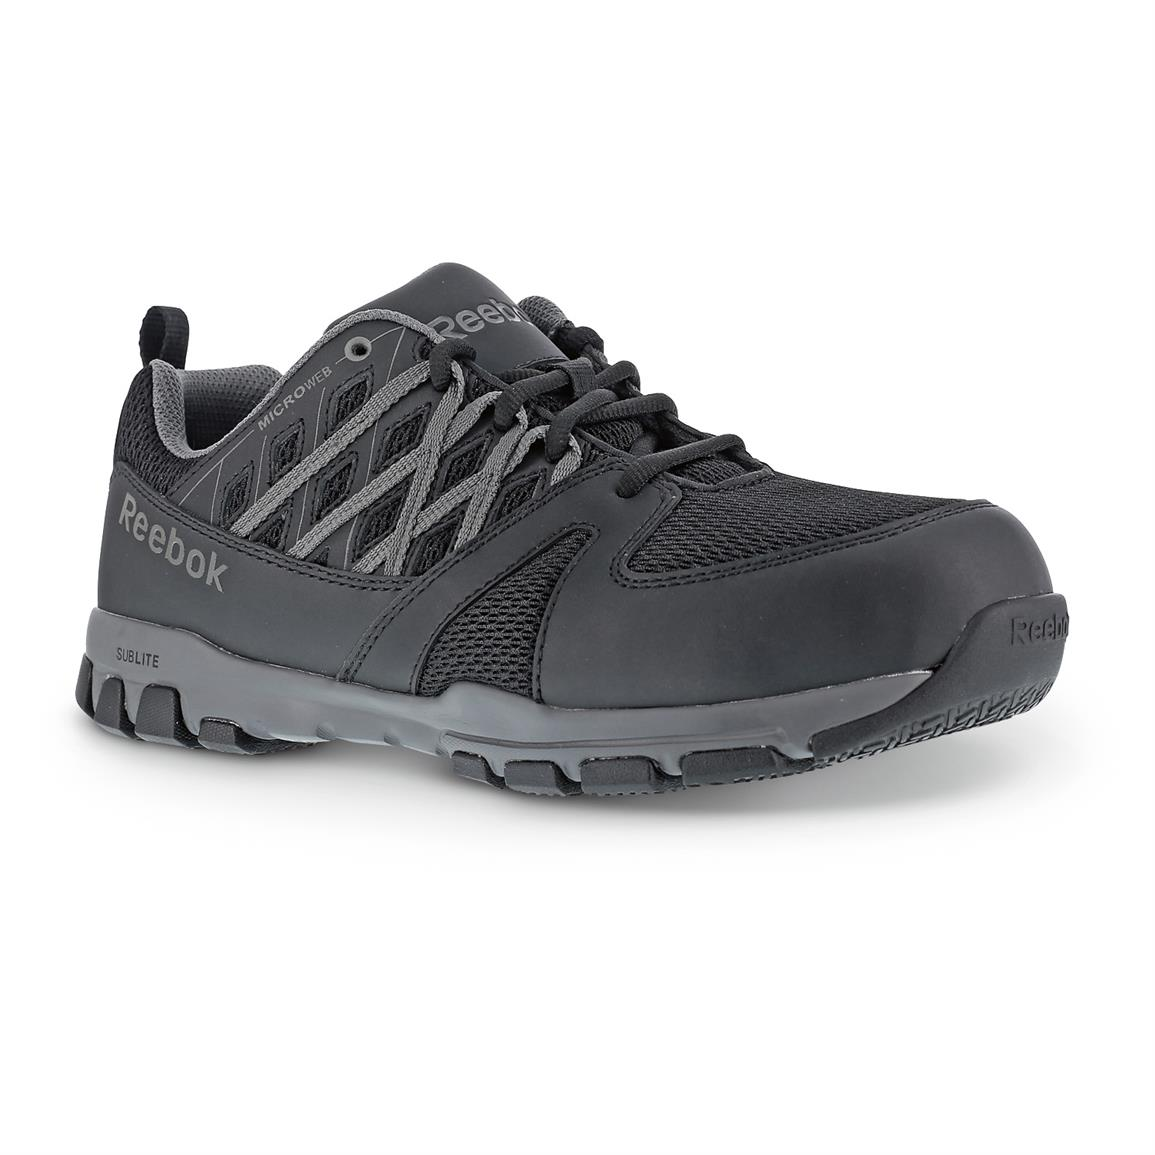 Men's Reebok Sublite Steel Toe Work Shoes, Black/Gray